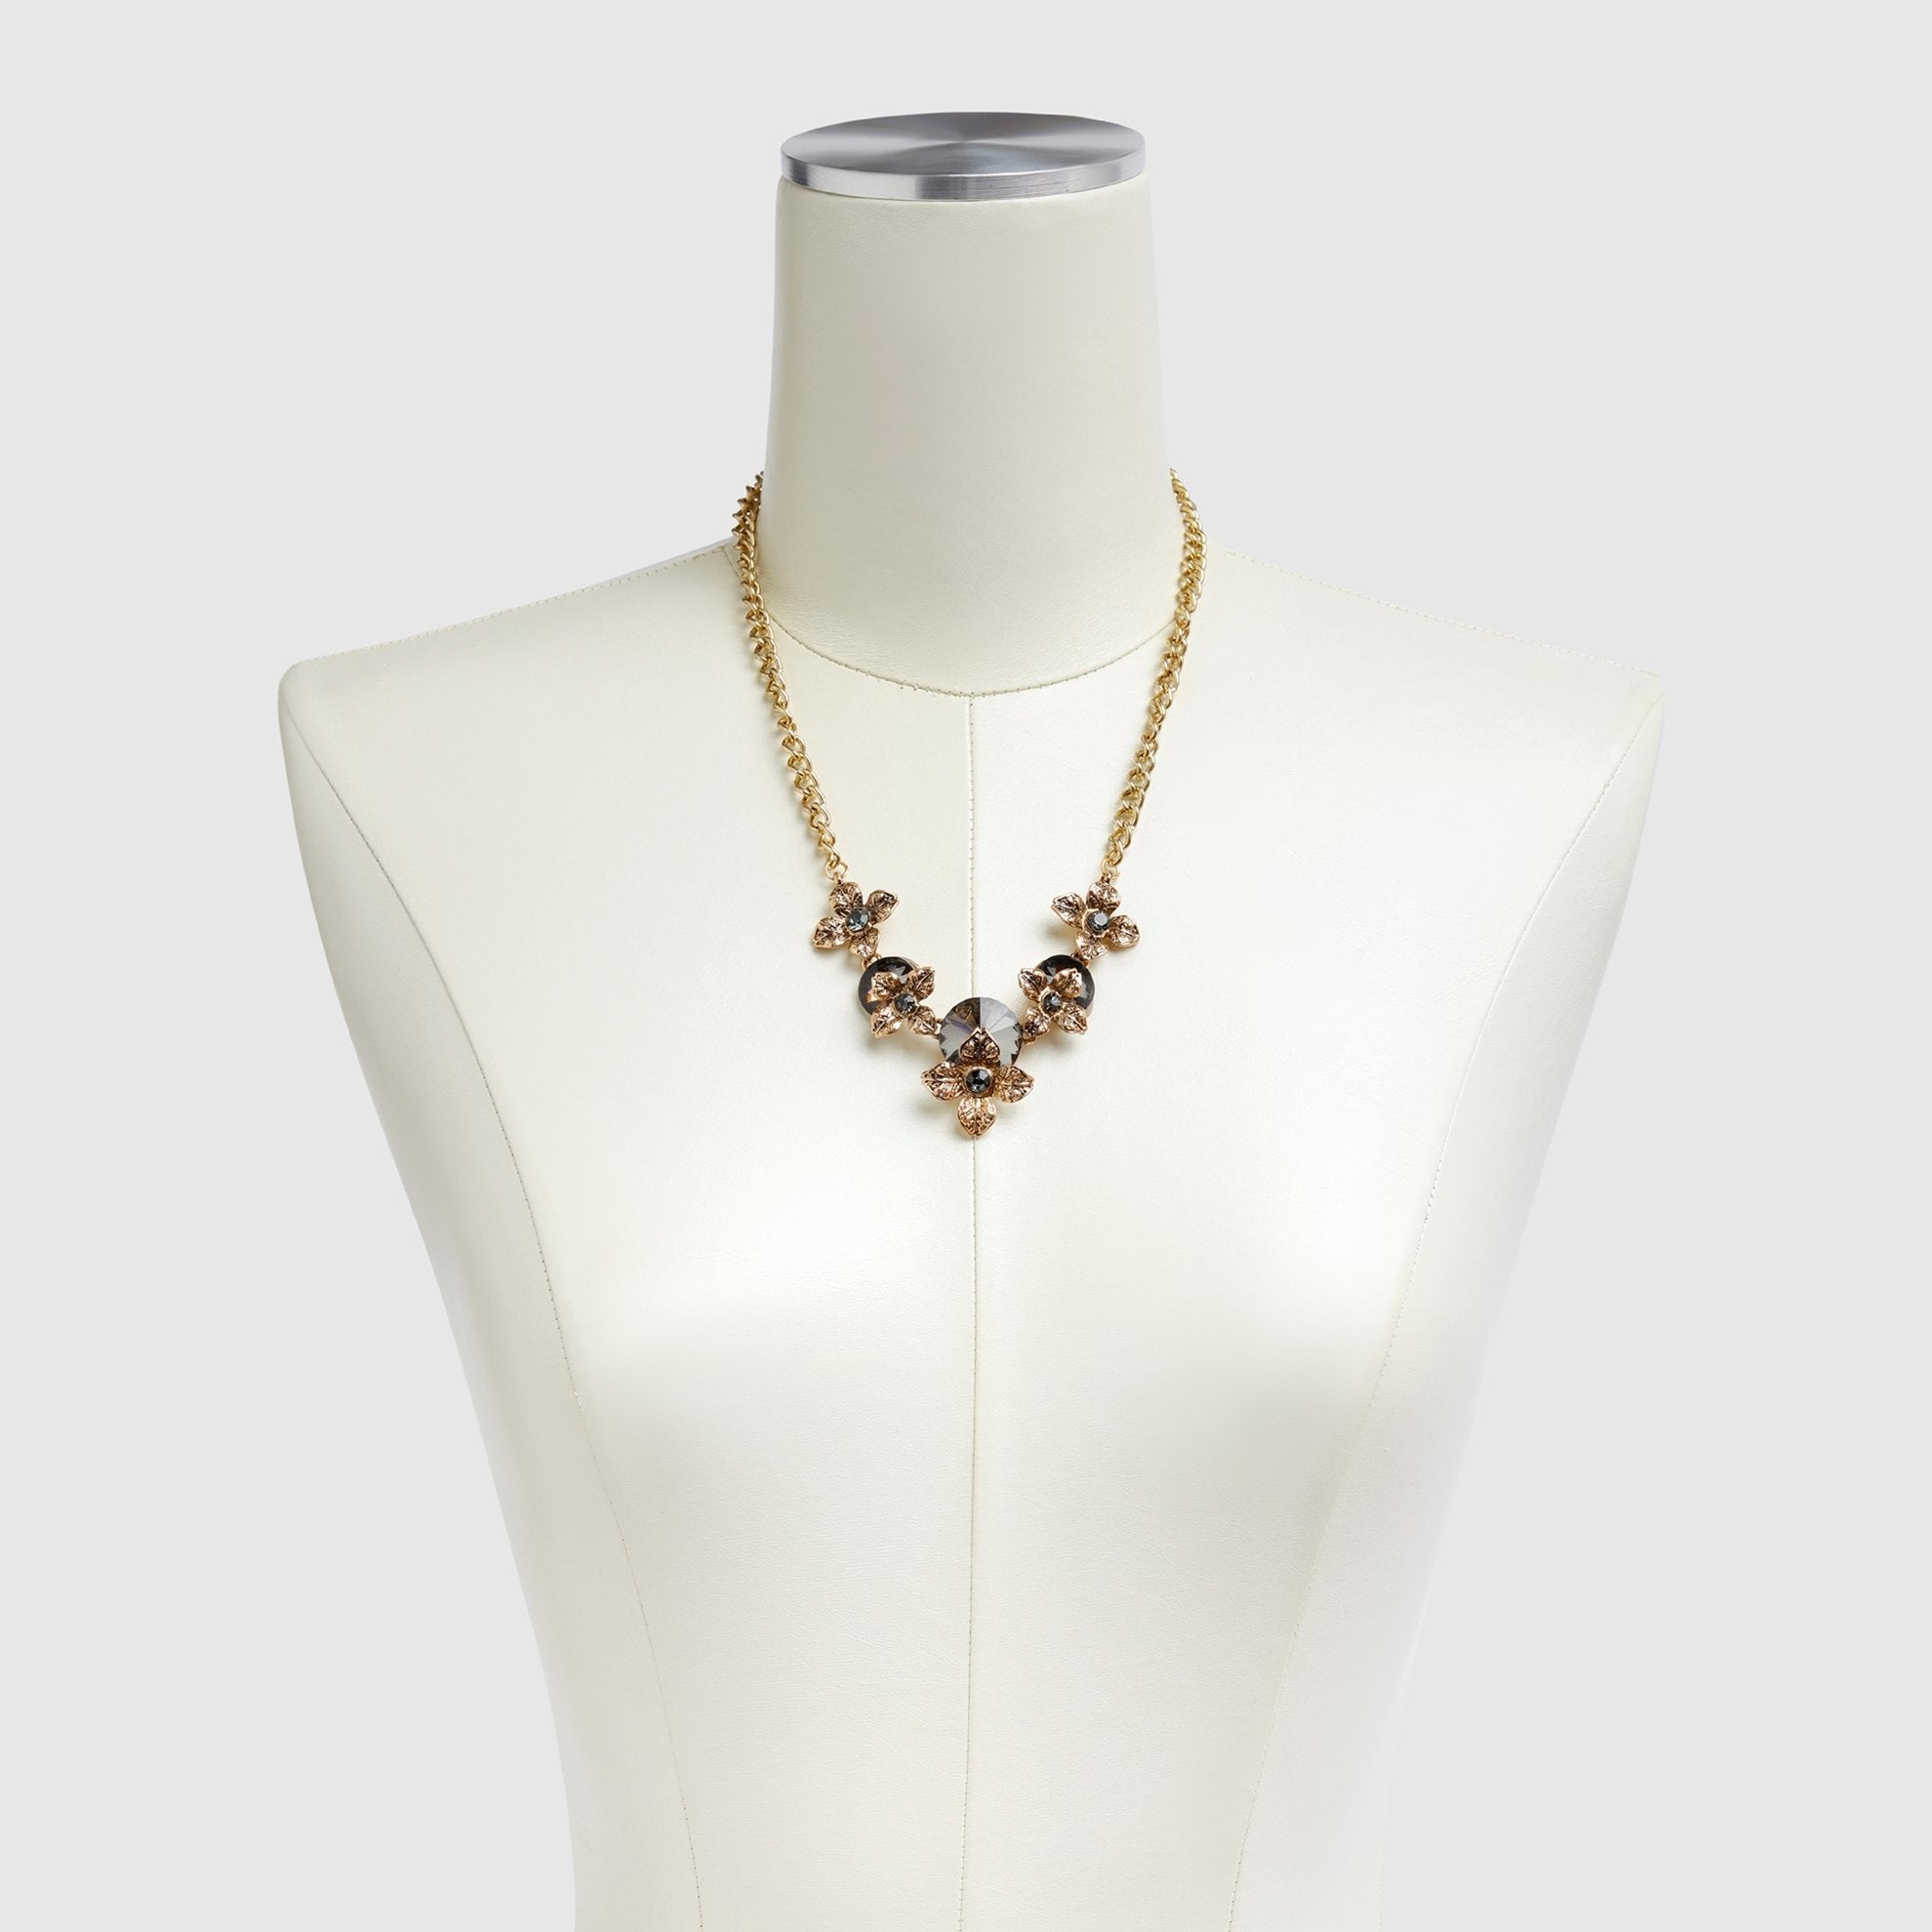 Chic Floral Necklace on Dress Form